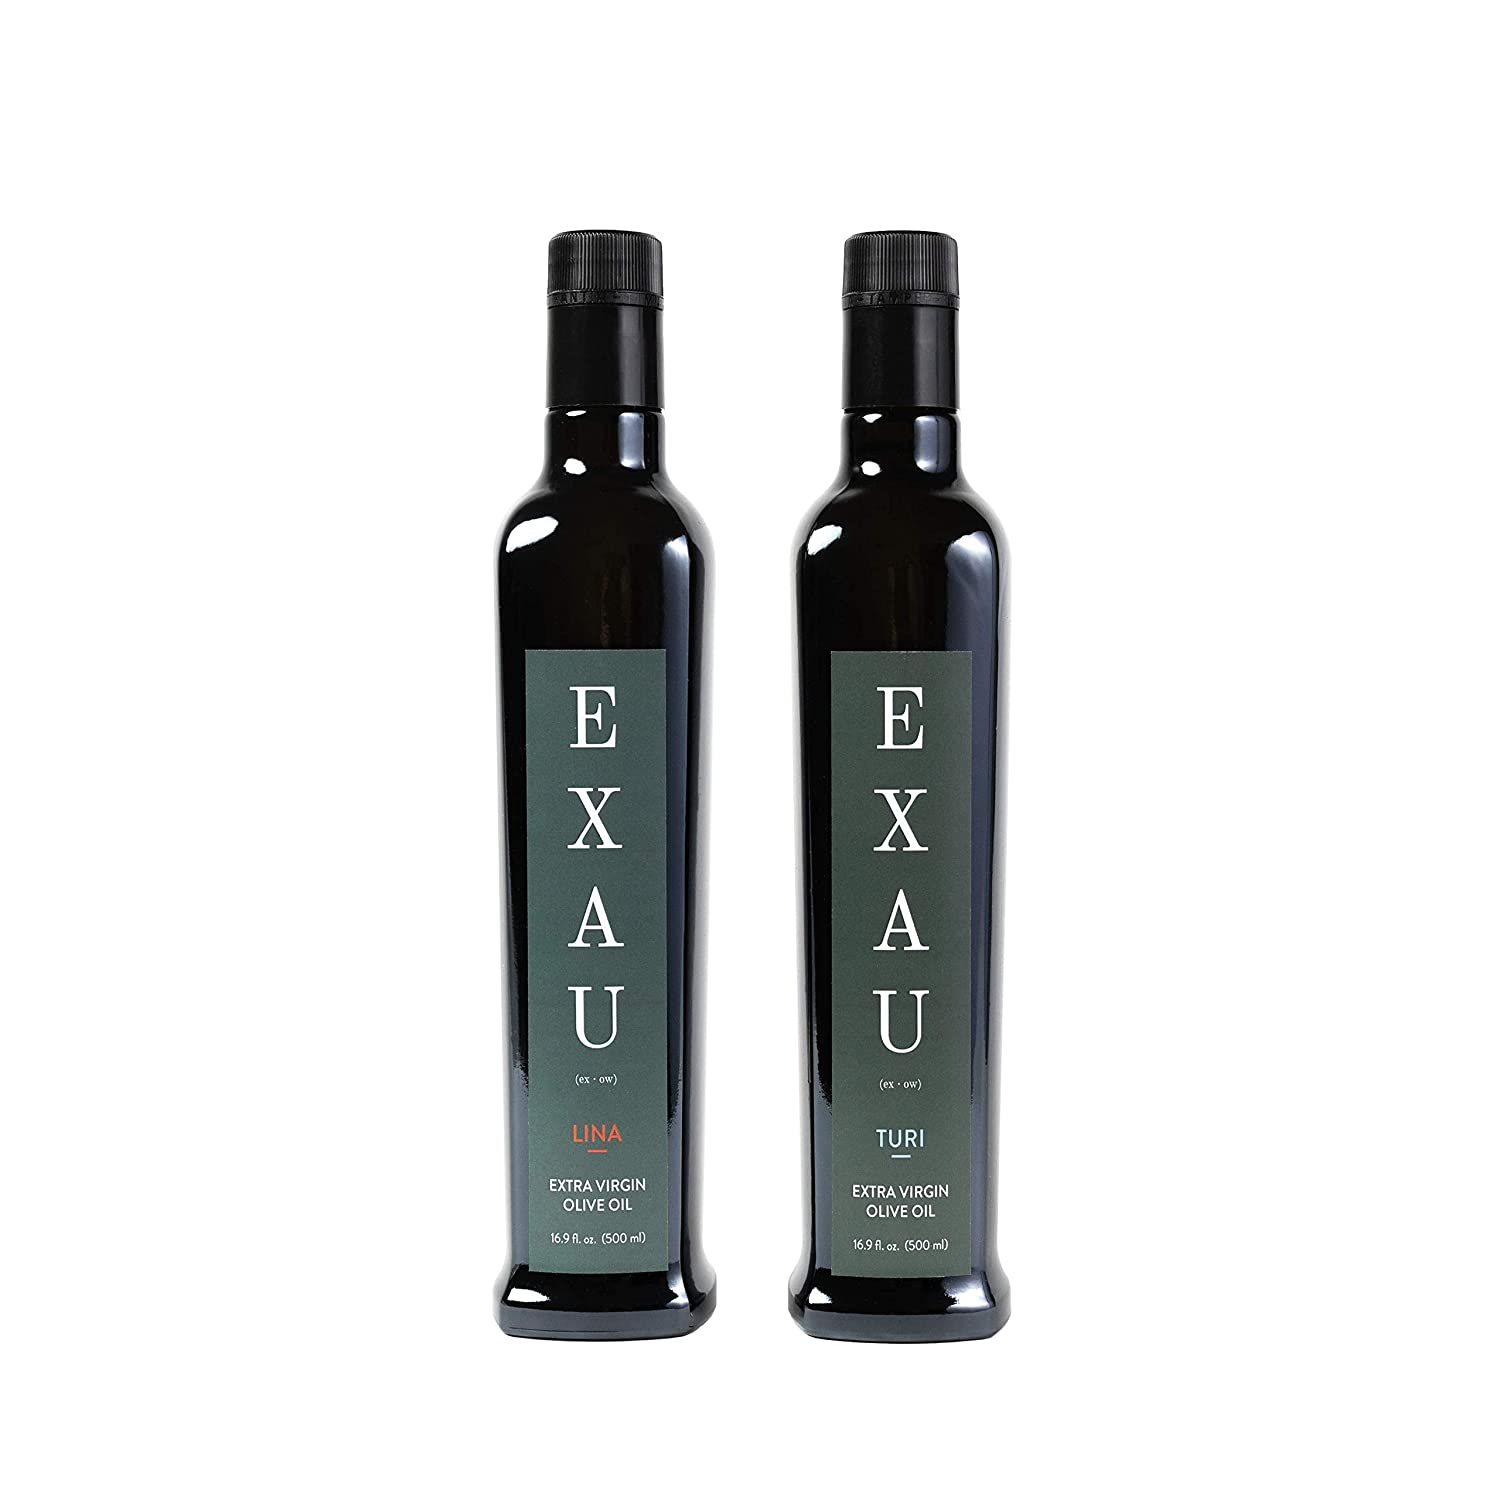 Two bottles on olive oil on white background